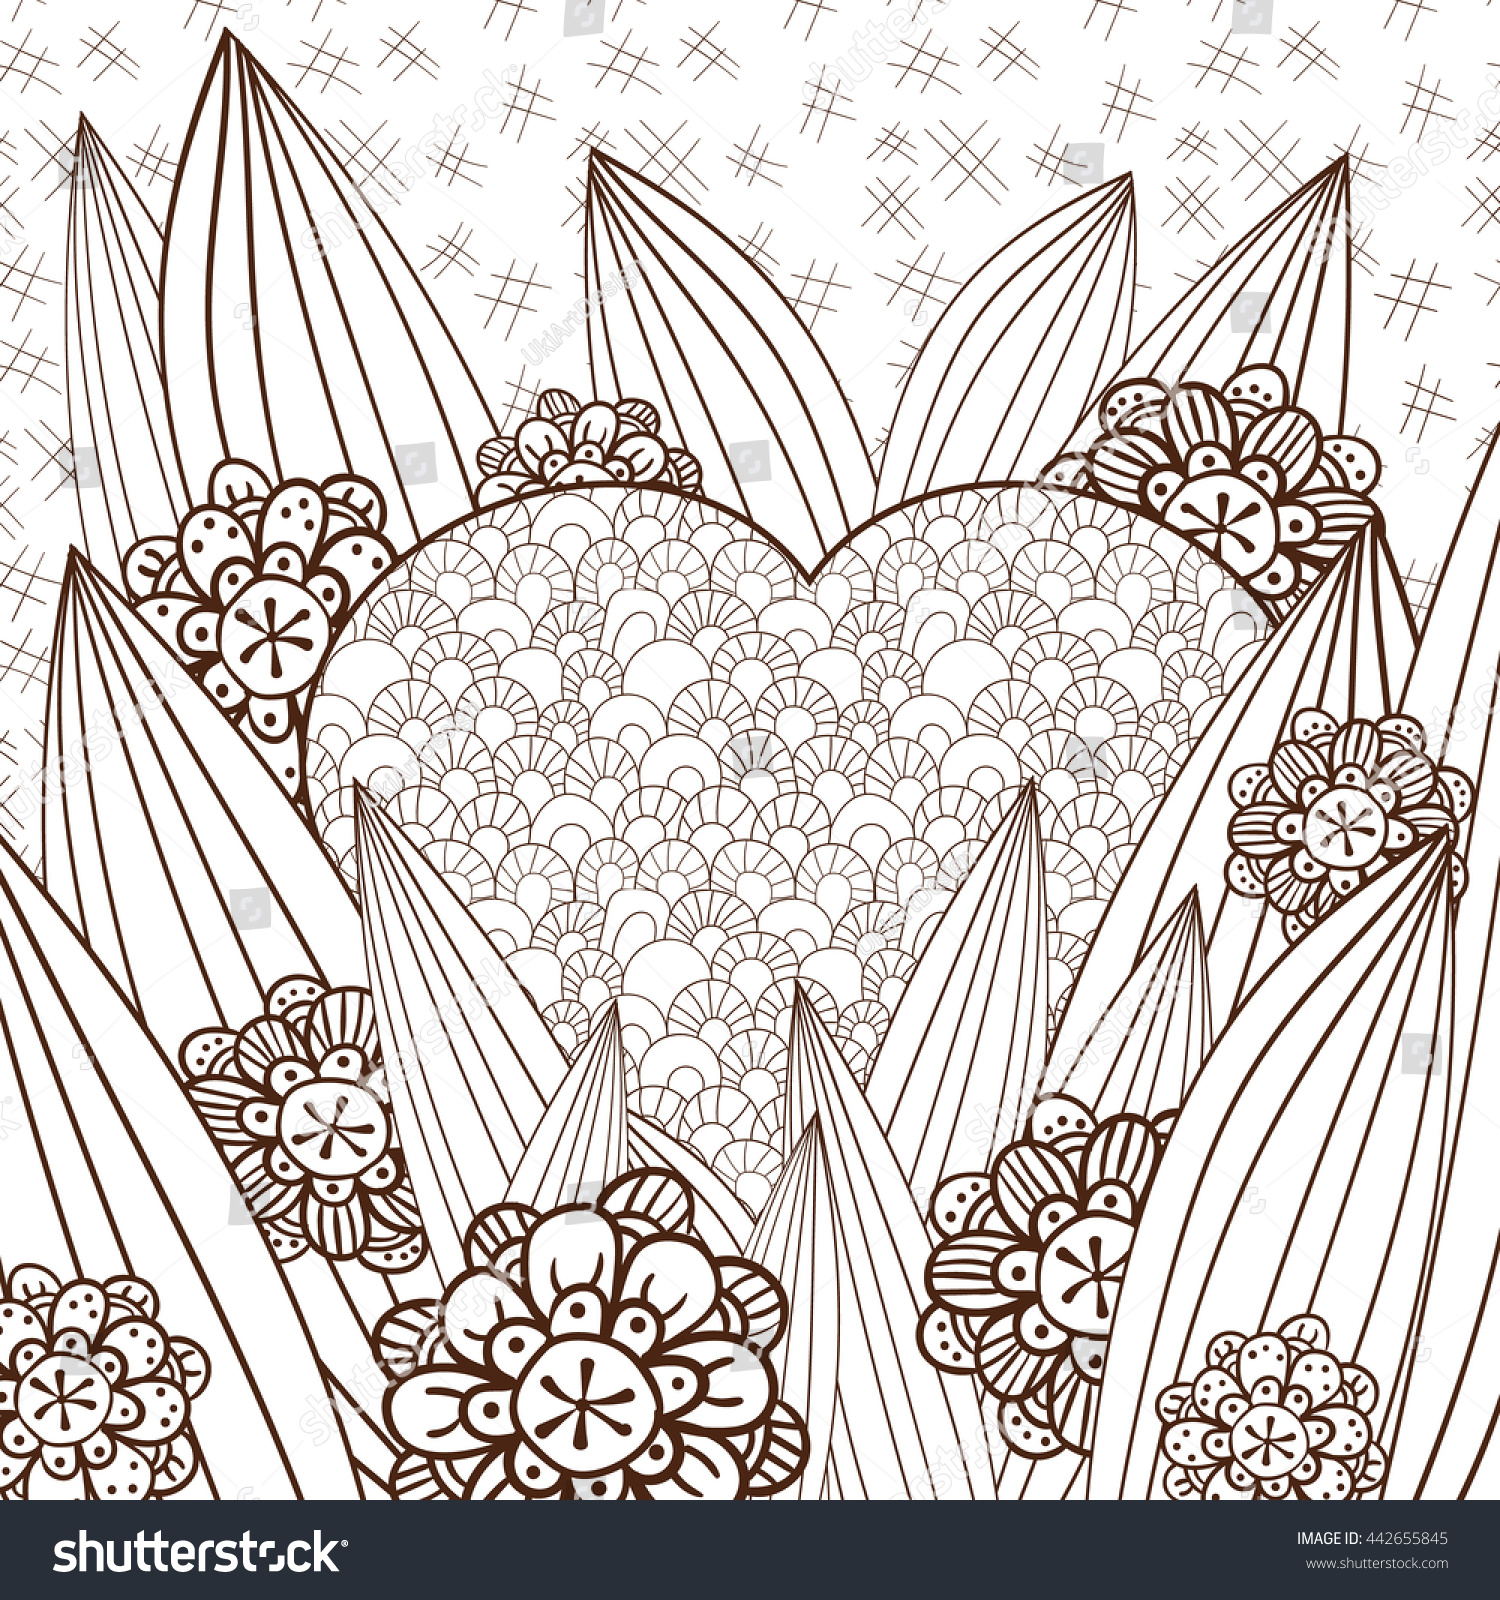 Whimsical designs coloring book - Adult Coloring Page Heart In Whimsical Garden Hand Drawn Illustration For Colouring Book